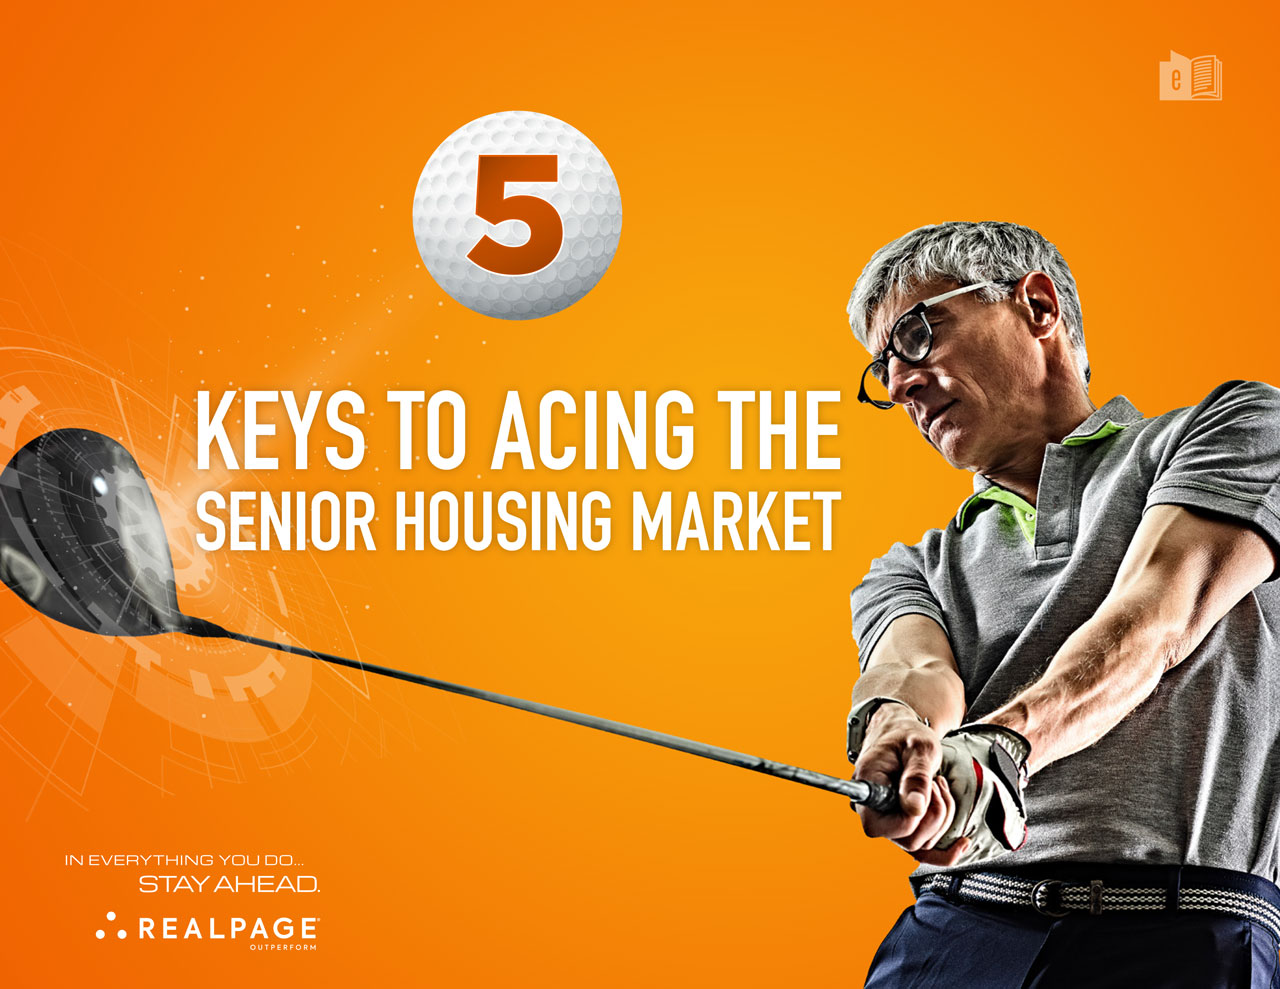 5 keys to acing the senior housing market